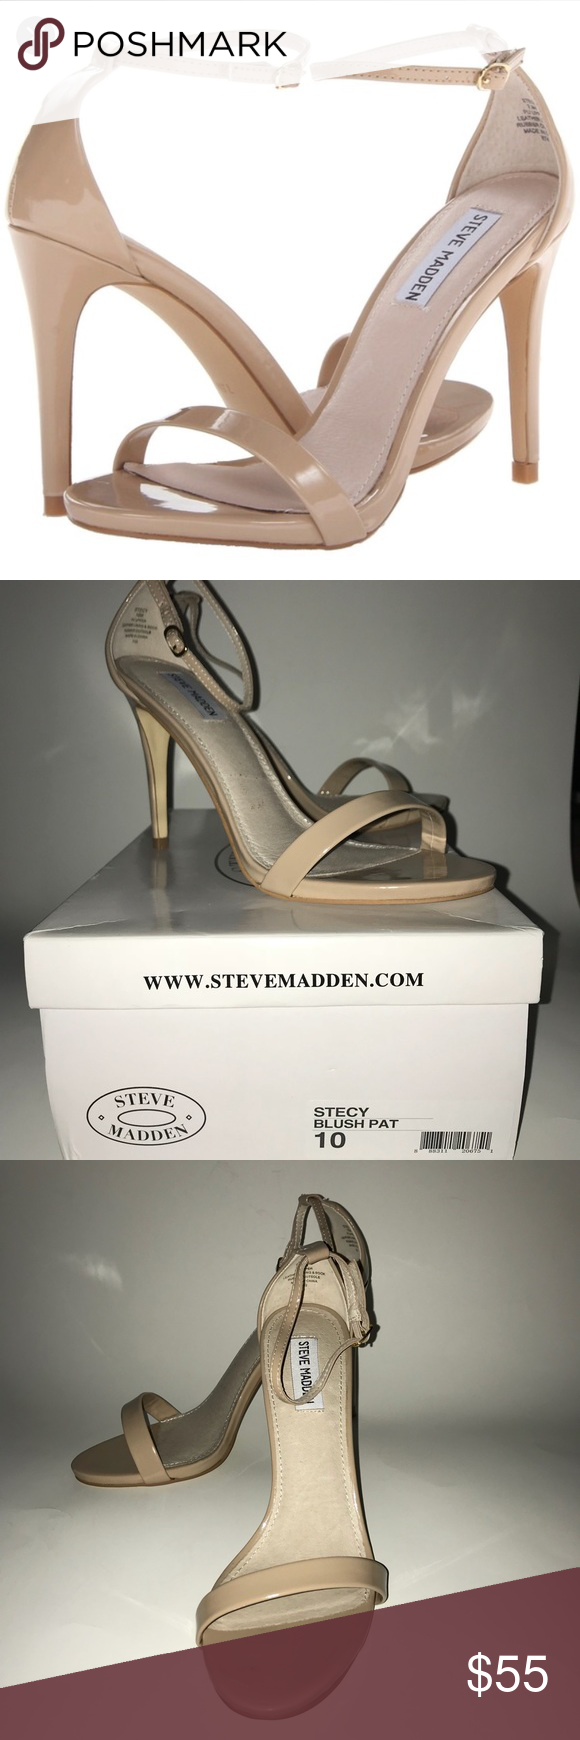 e2daee8f0dd Steve Madden Stecy Blush Patent Heel Gorgeous, sleek and stylish ...